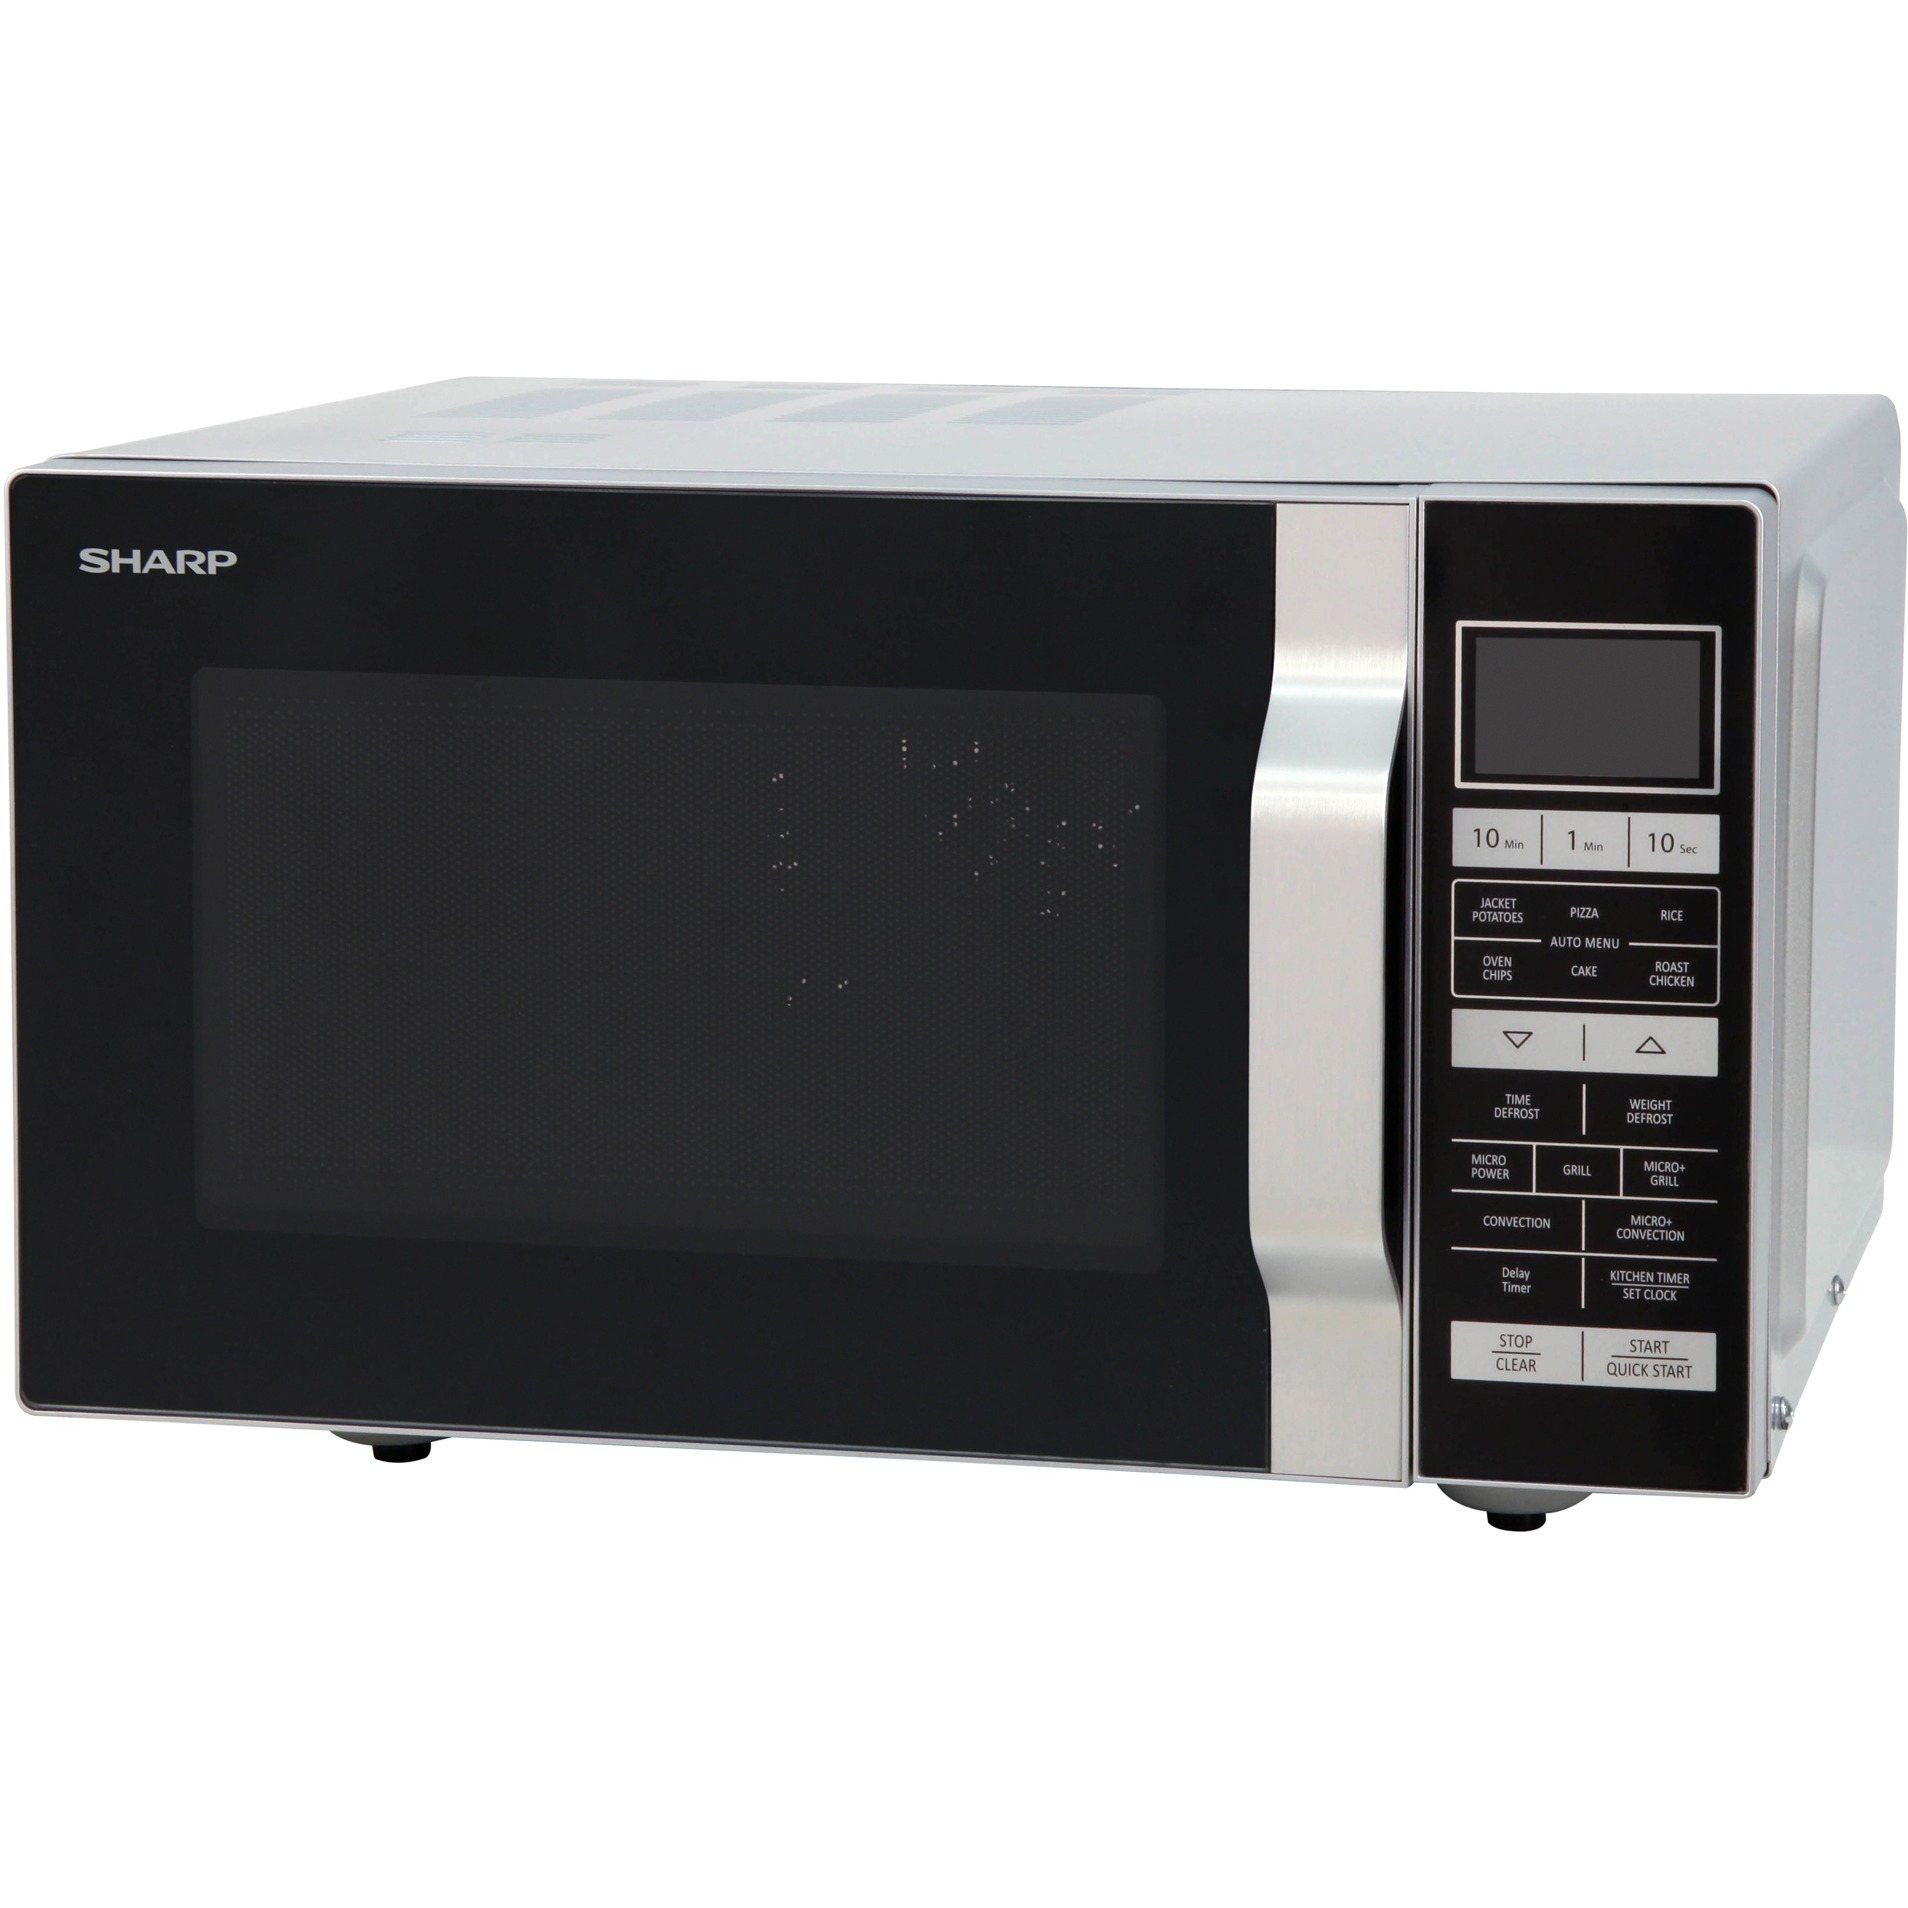 Sharp R860slm Flatbed Combination Microwave Microwave